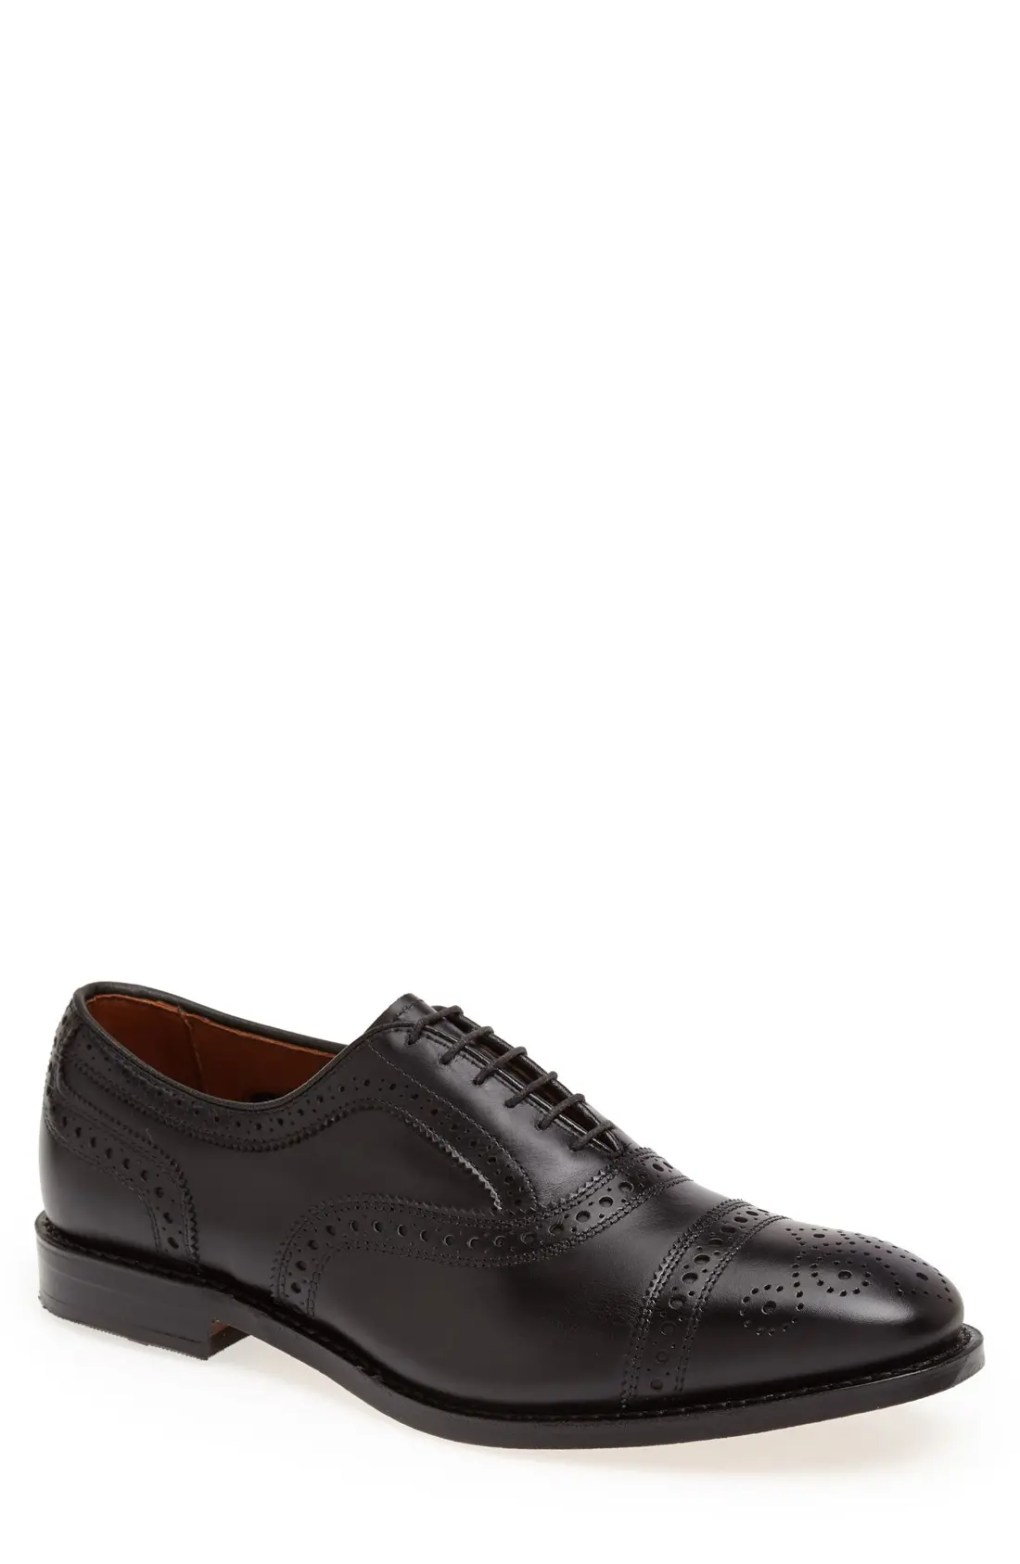 Men's Allen Edmonds Strand Cap Toe Oxford, Size 10 D - Black